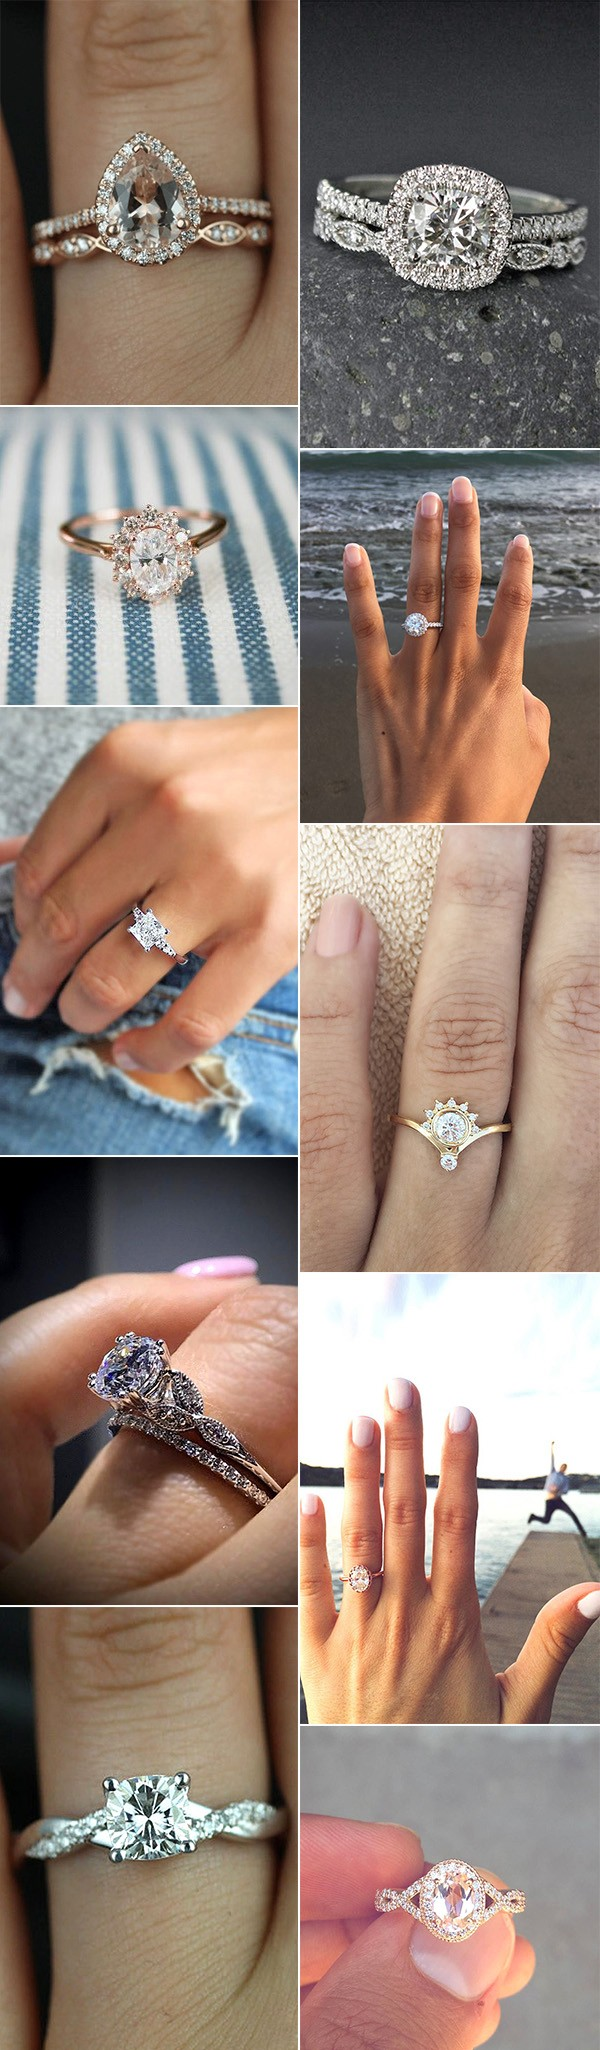 top wedding engagement ring ideas